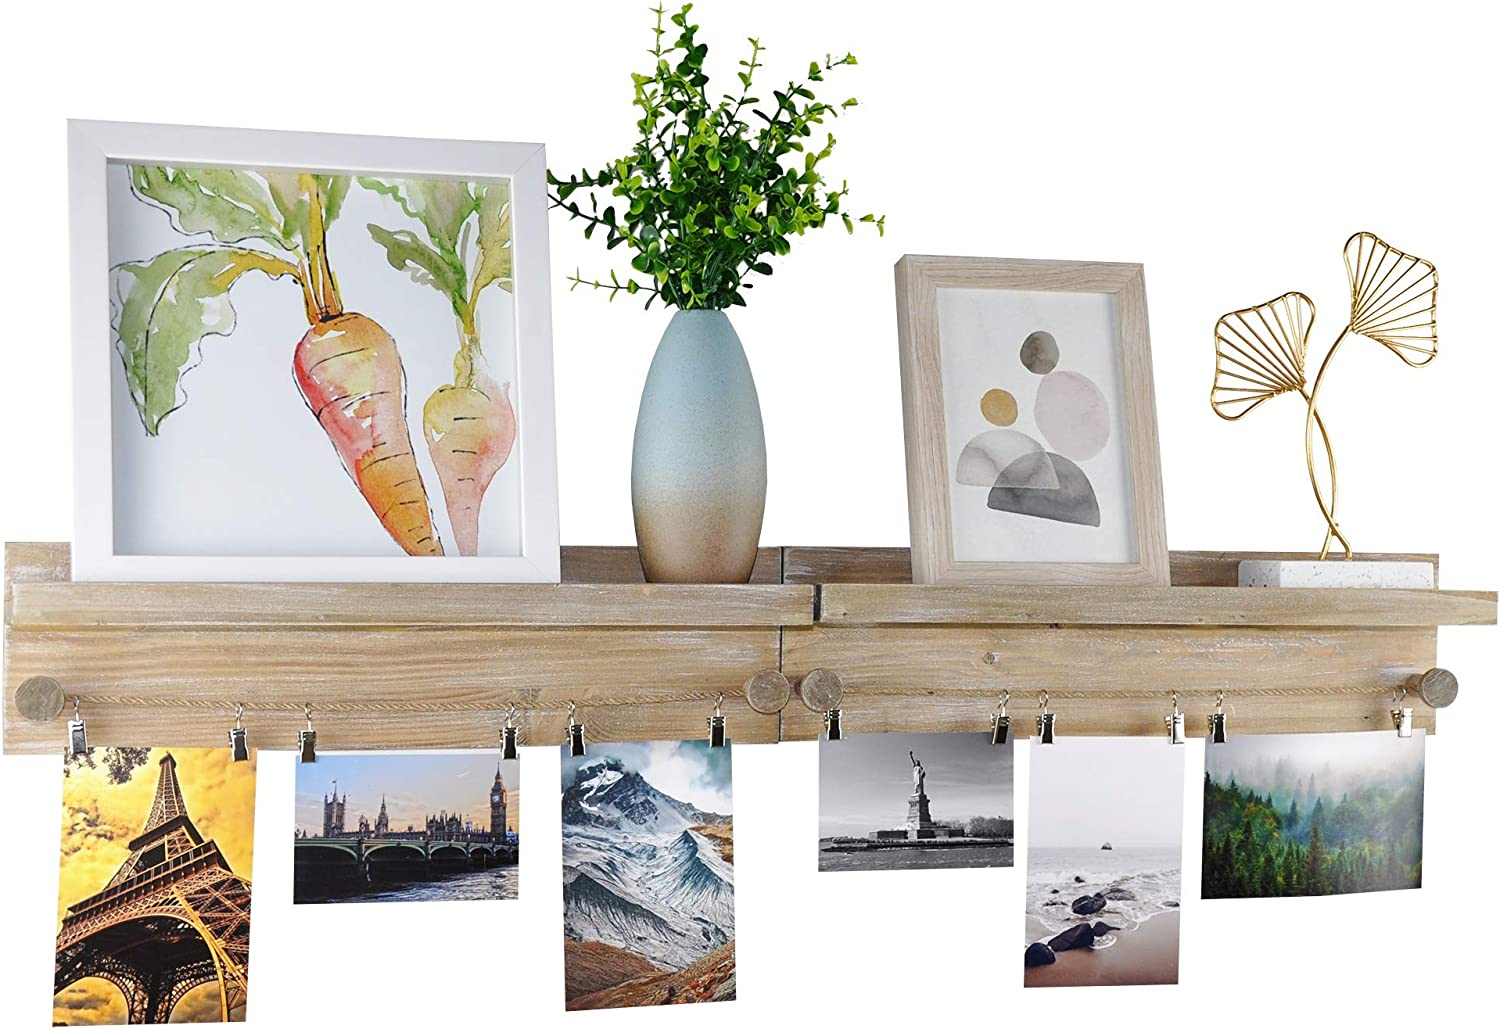 DUCIHBA Set of 2 Wall Selling rankings Mounted Picture Ledge Floating Display Seattle Mall She